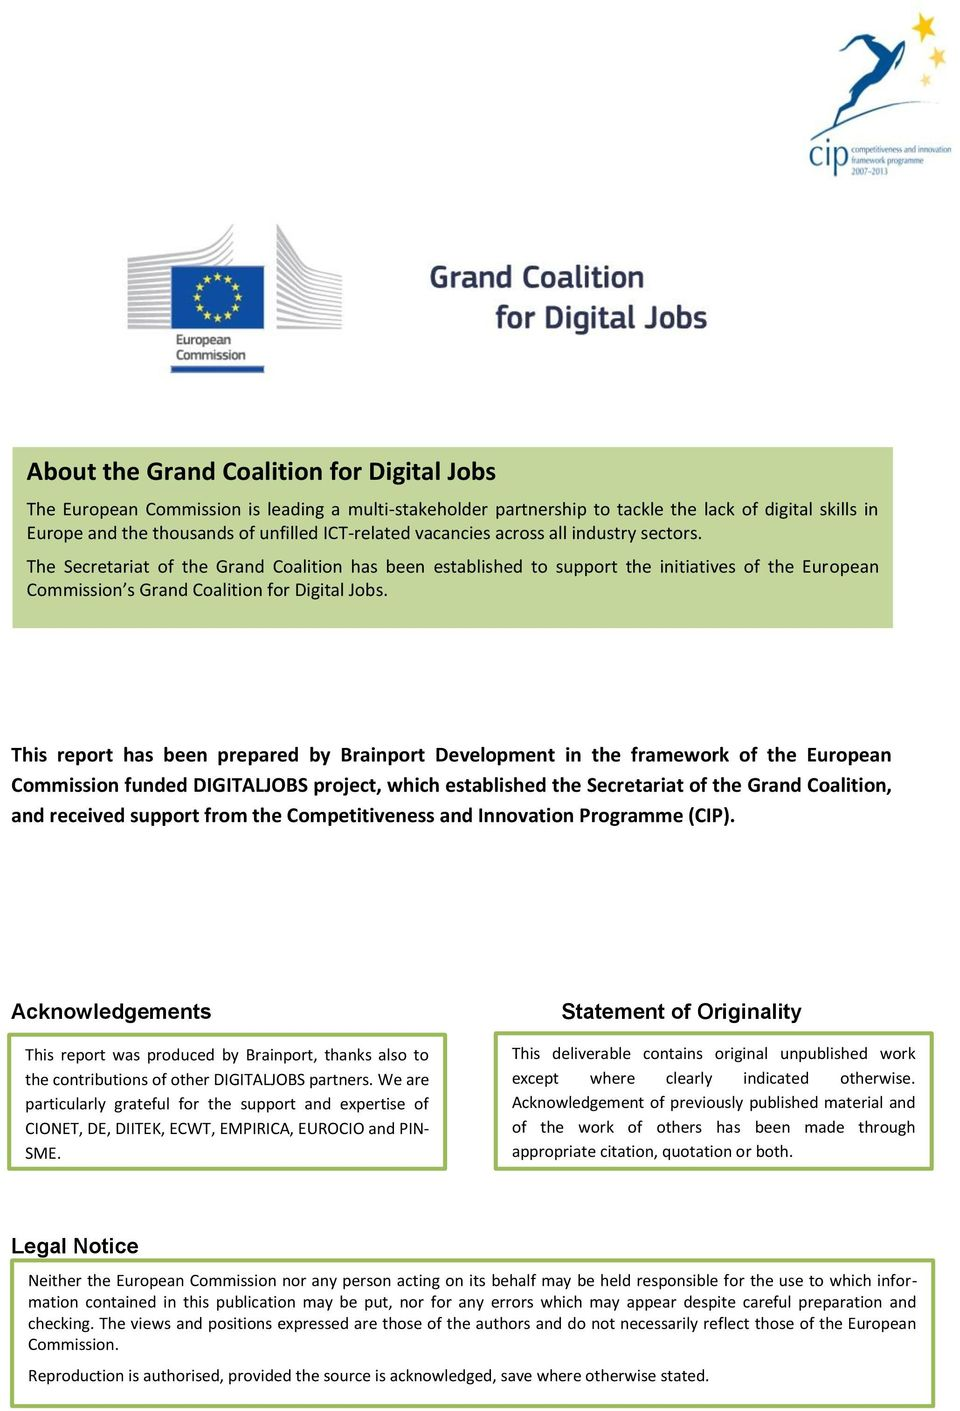 This report has been prepared by Brainport Development in the framework of the European Commission funded DIGITALJOBS project, which established the Secretariat of the Grand Coalition, and received